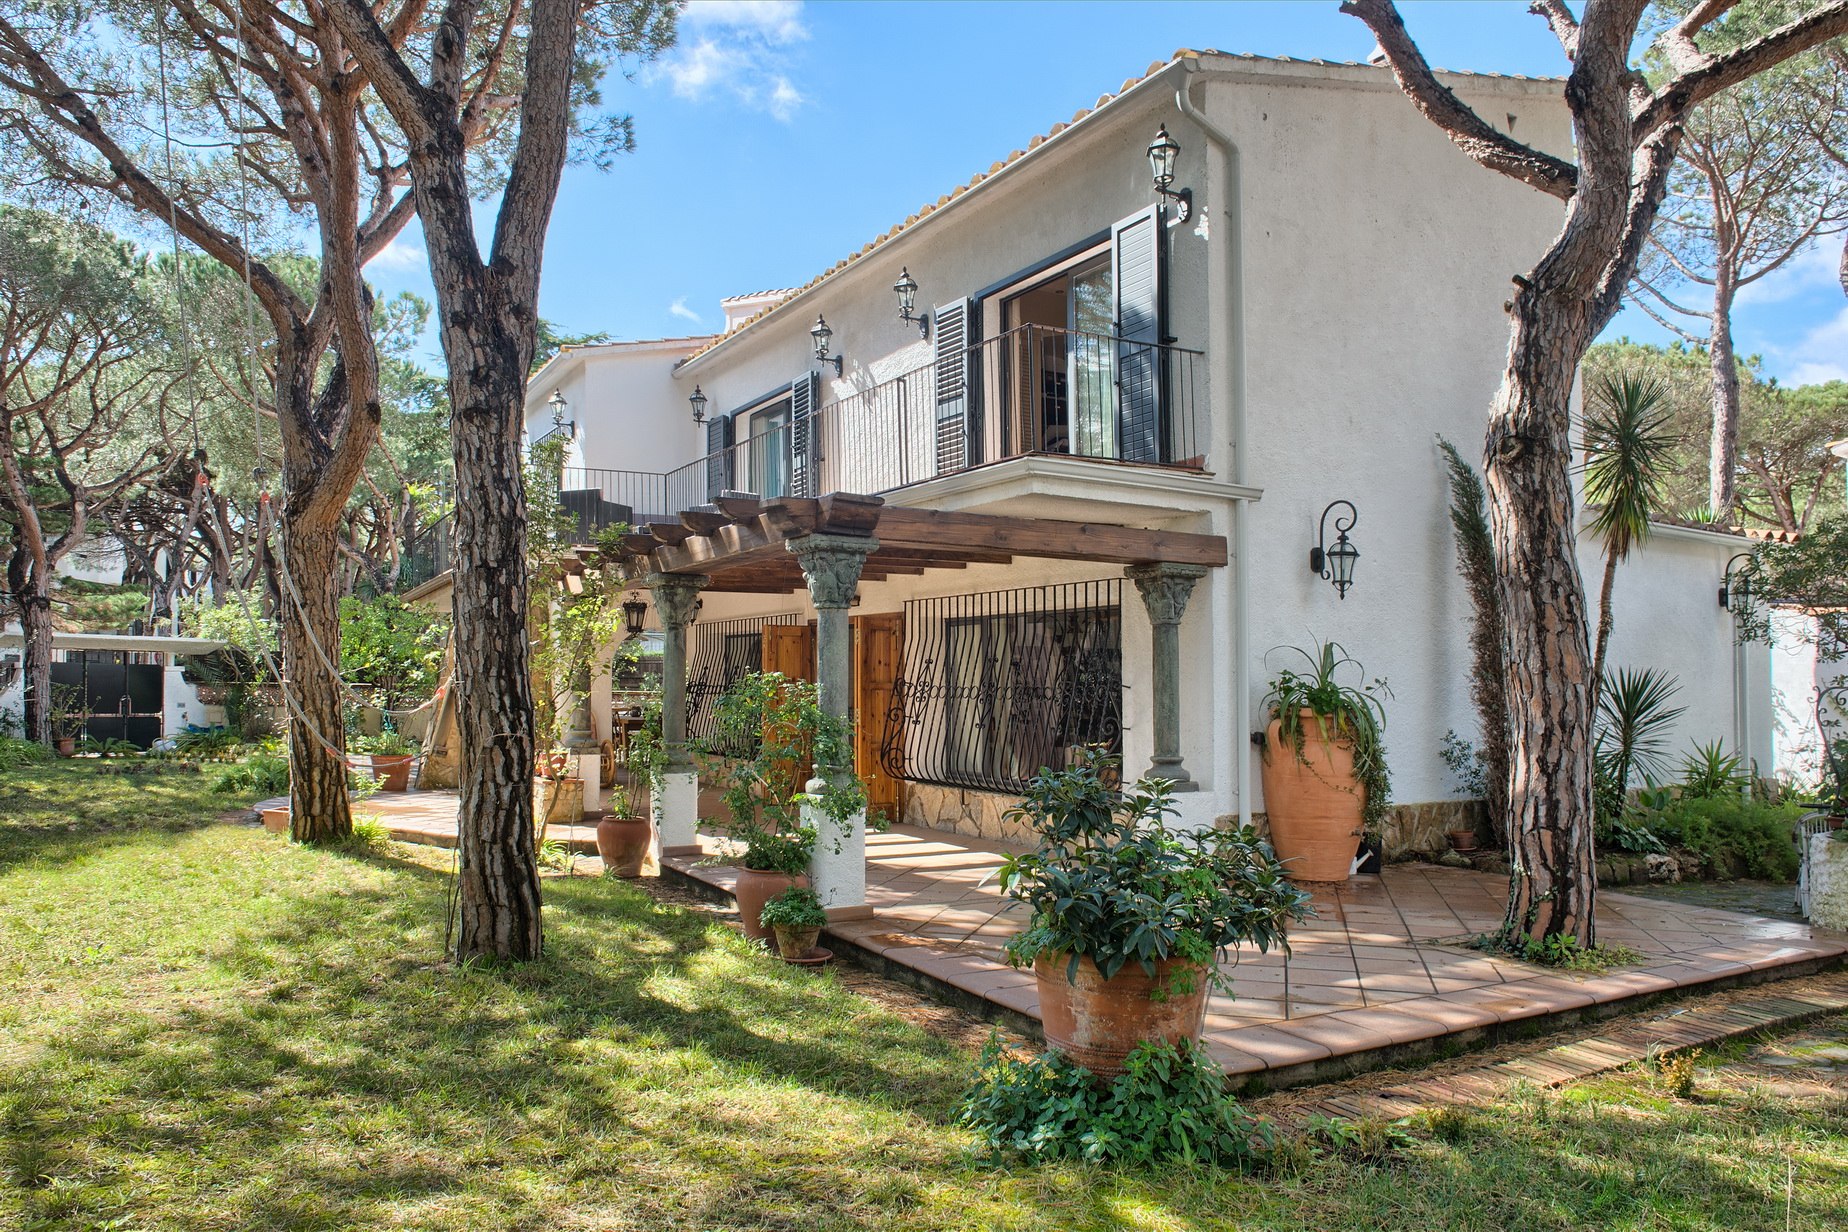 Single Family Home for Sale at Cosy rustic house near the centre of Playa de Aro Playa De Aro, Costa Brava, 17250 Spain